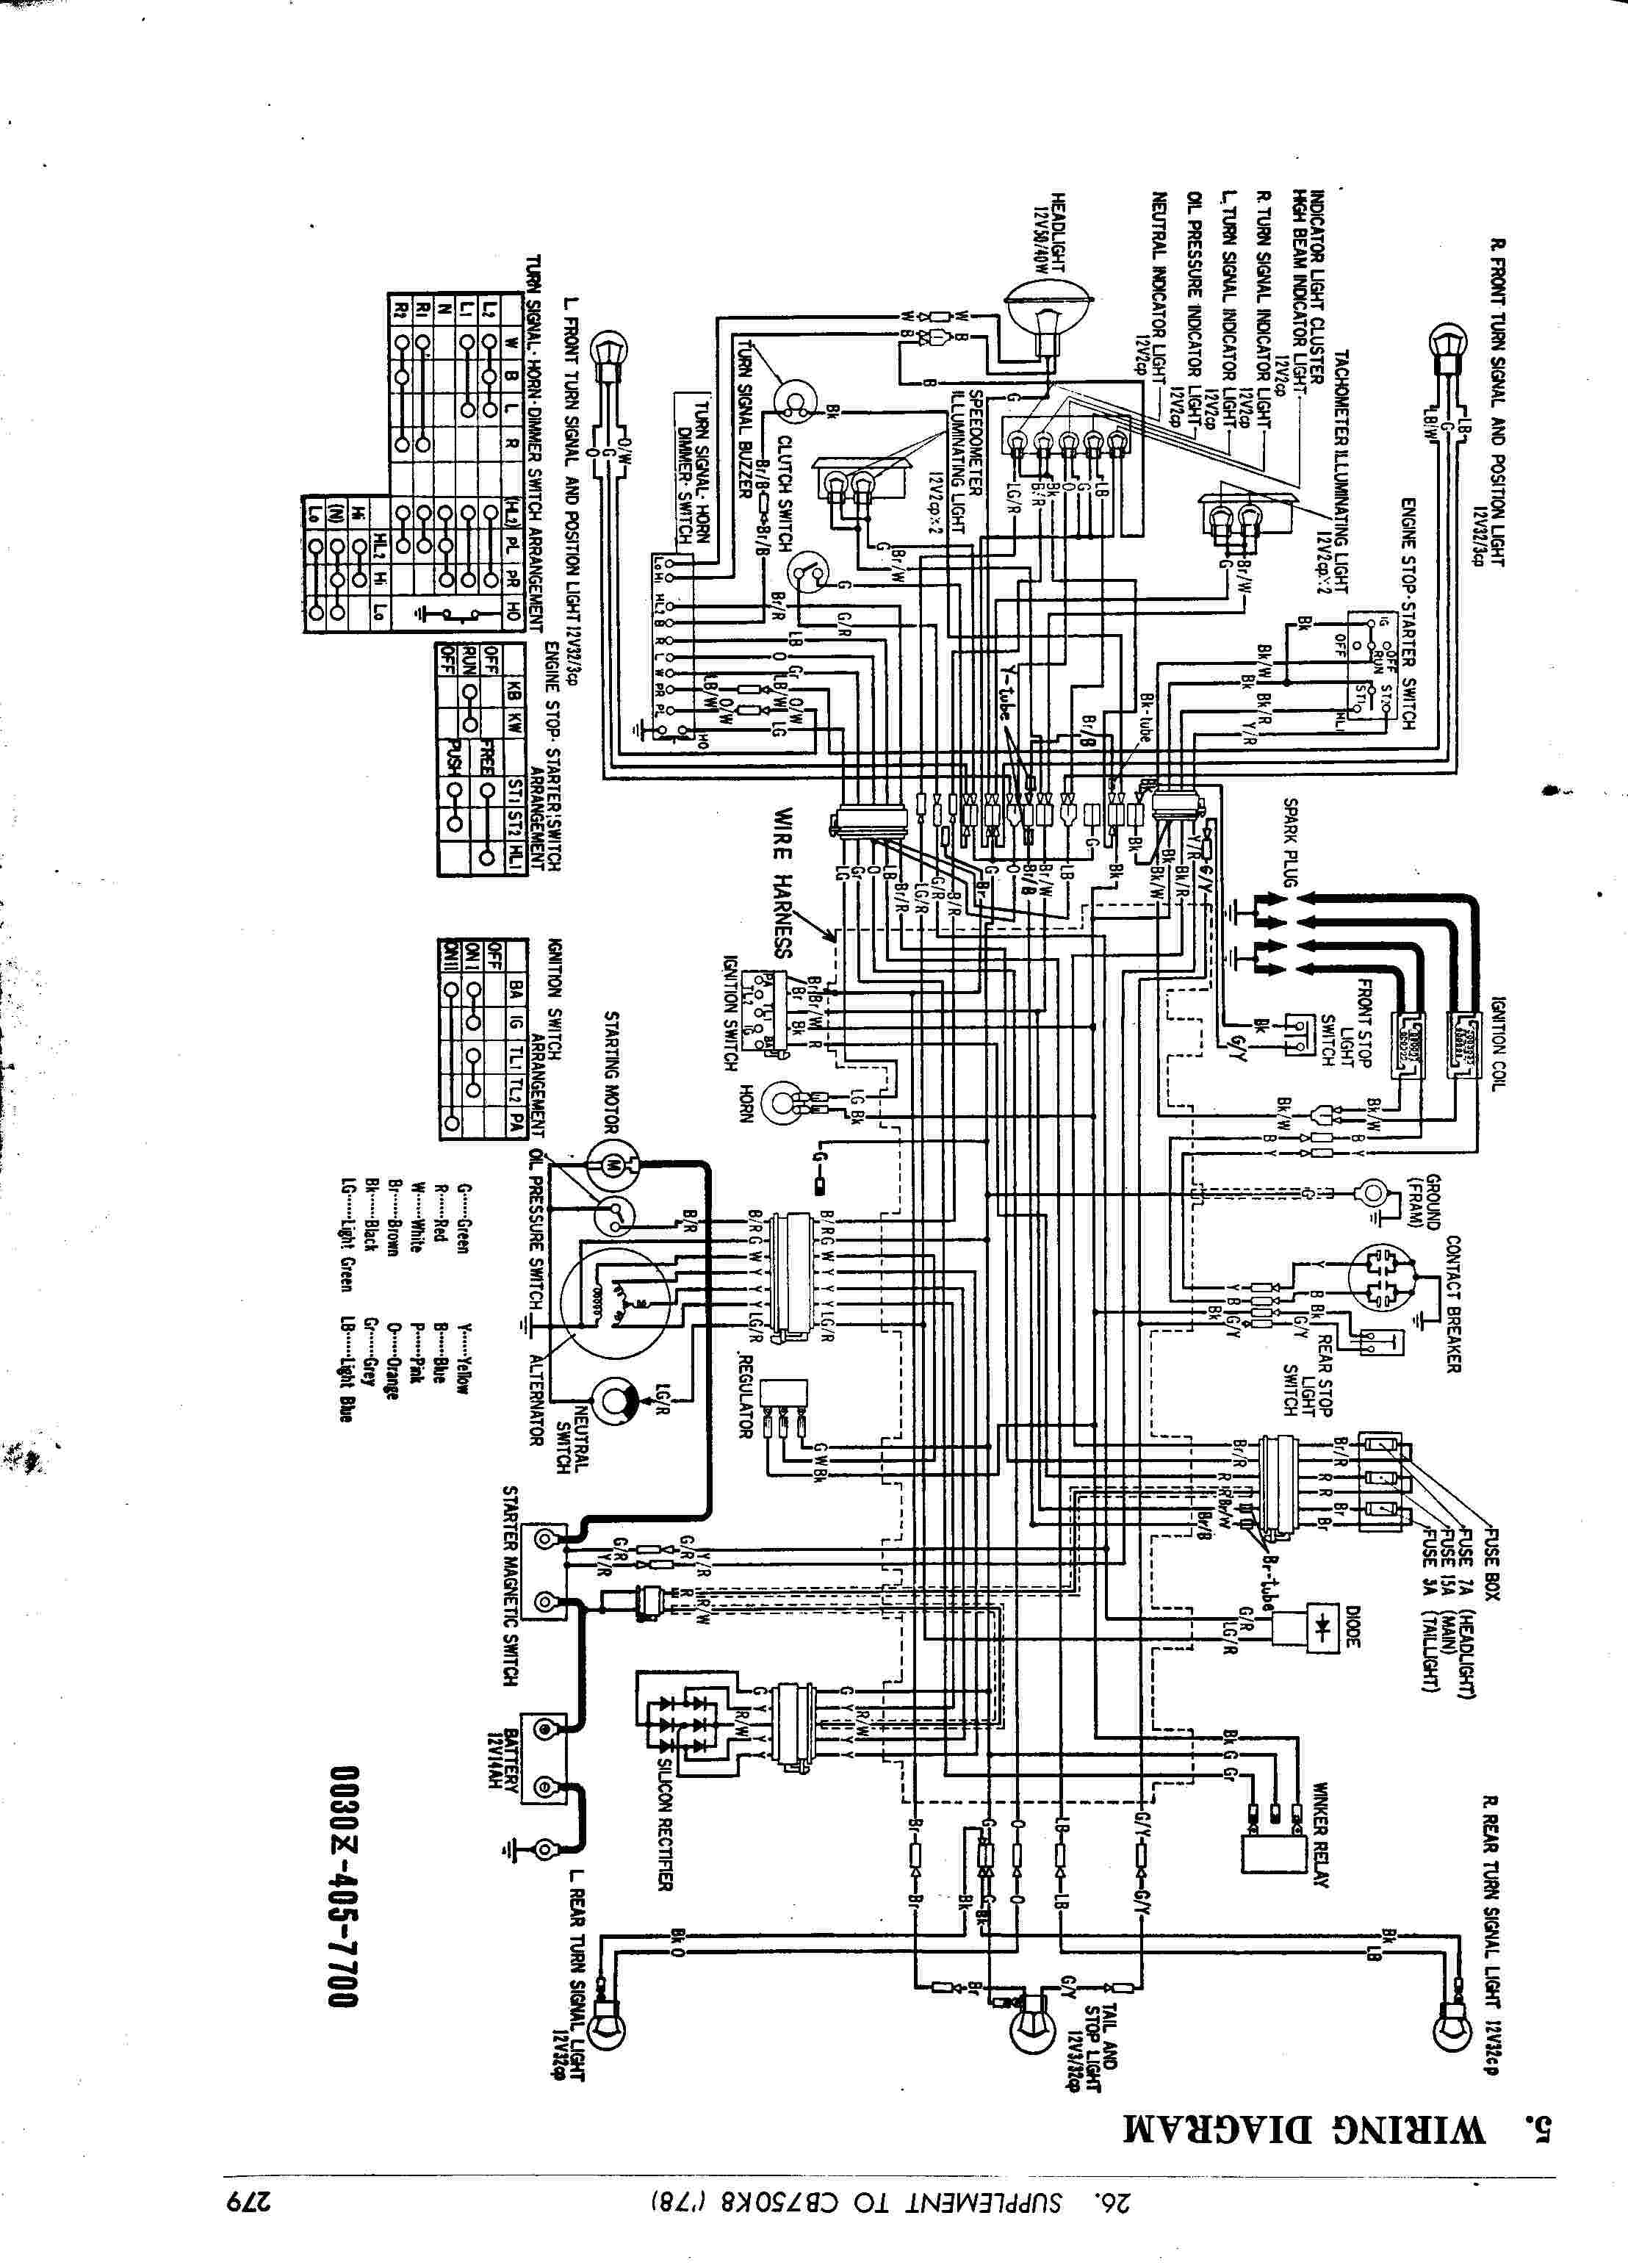 1981 honda cb750 wiring diagram 2005 civic cooling system 80 yamaha xs1100 free picture get